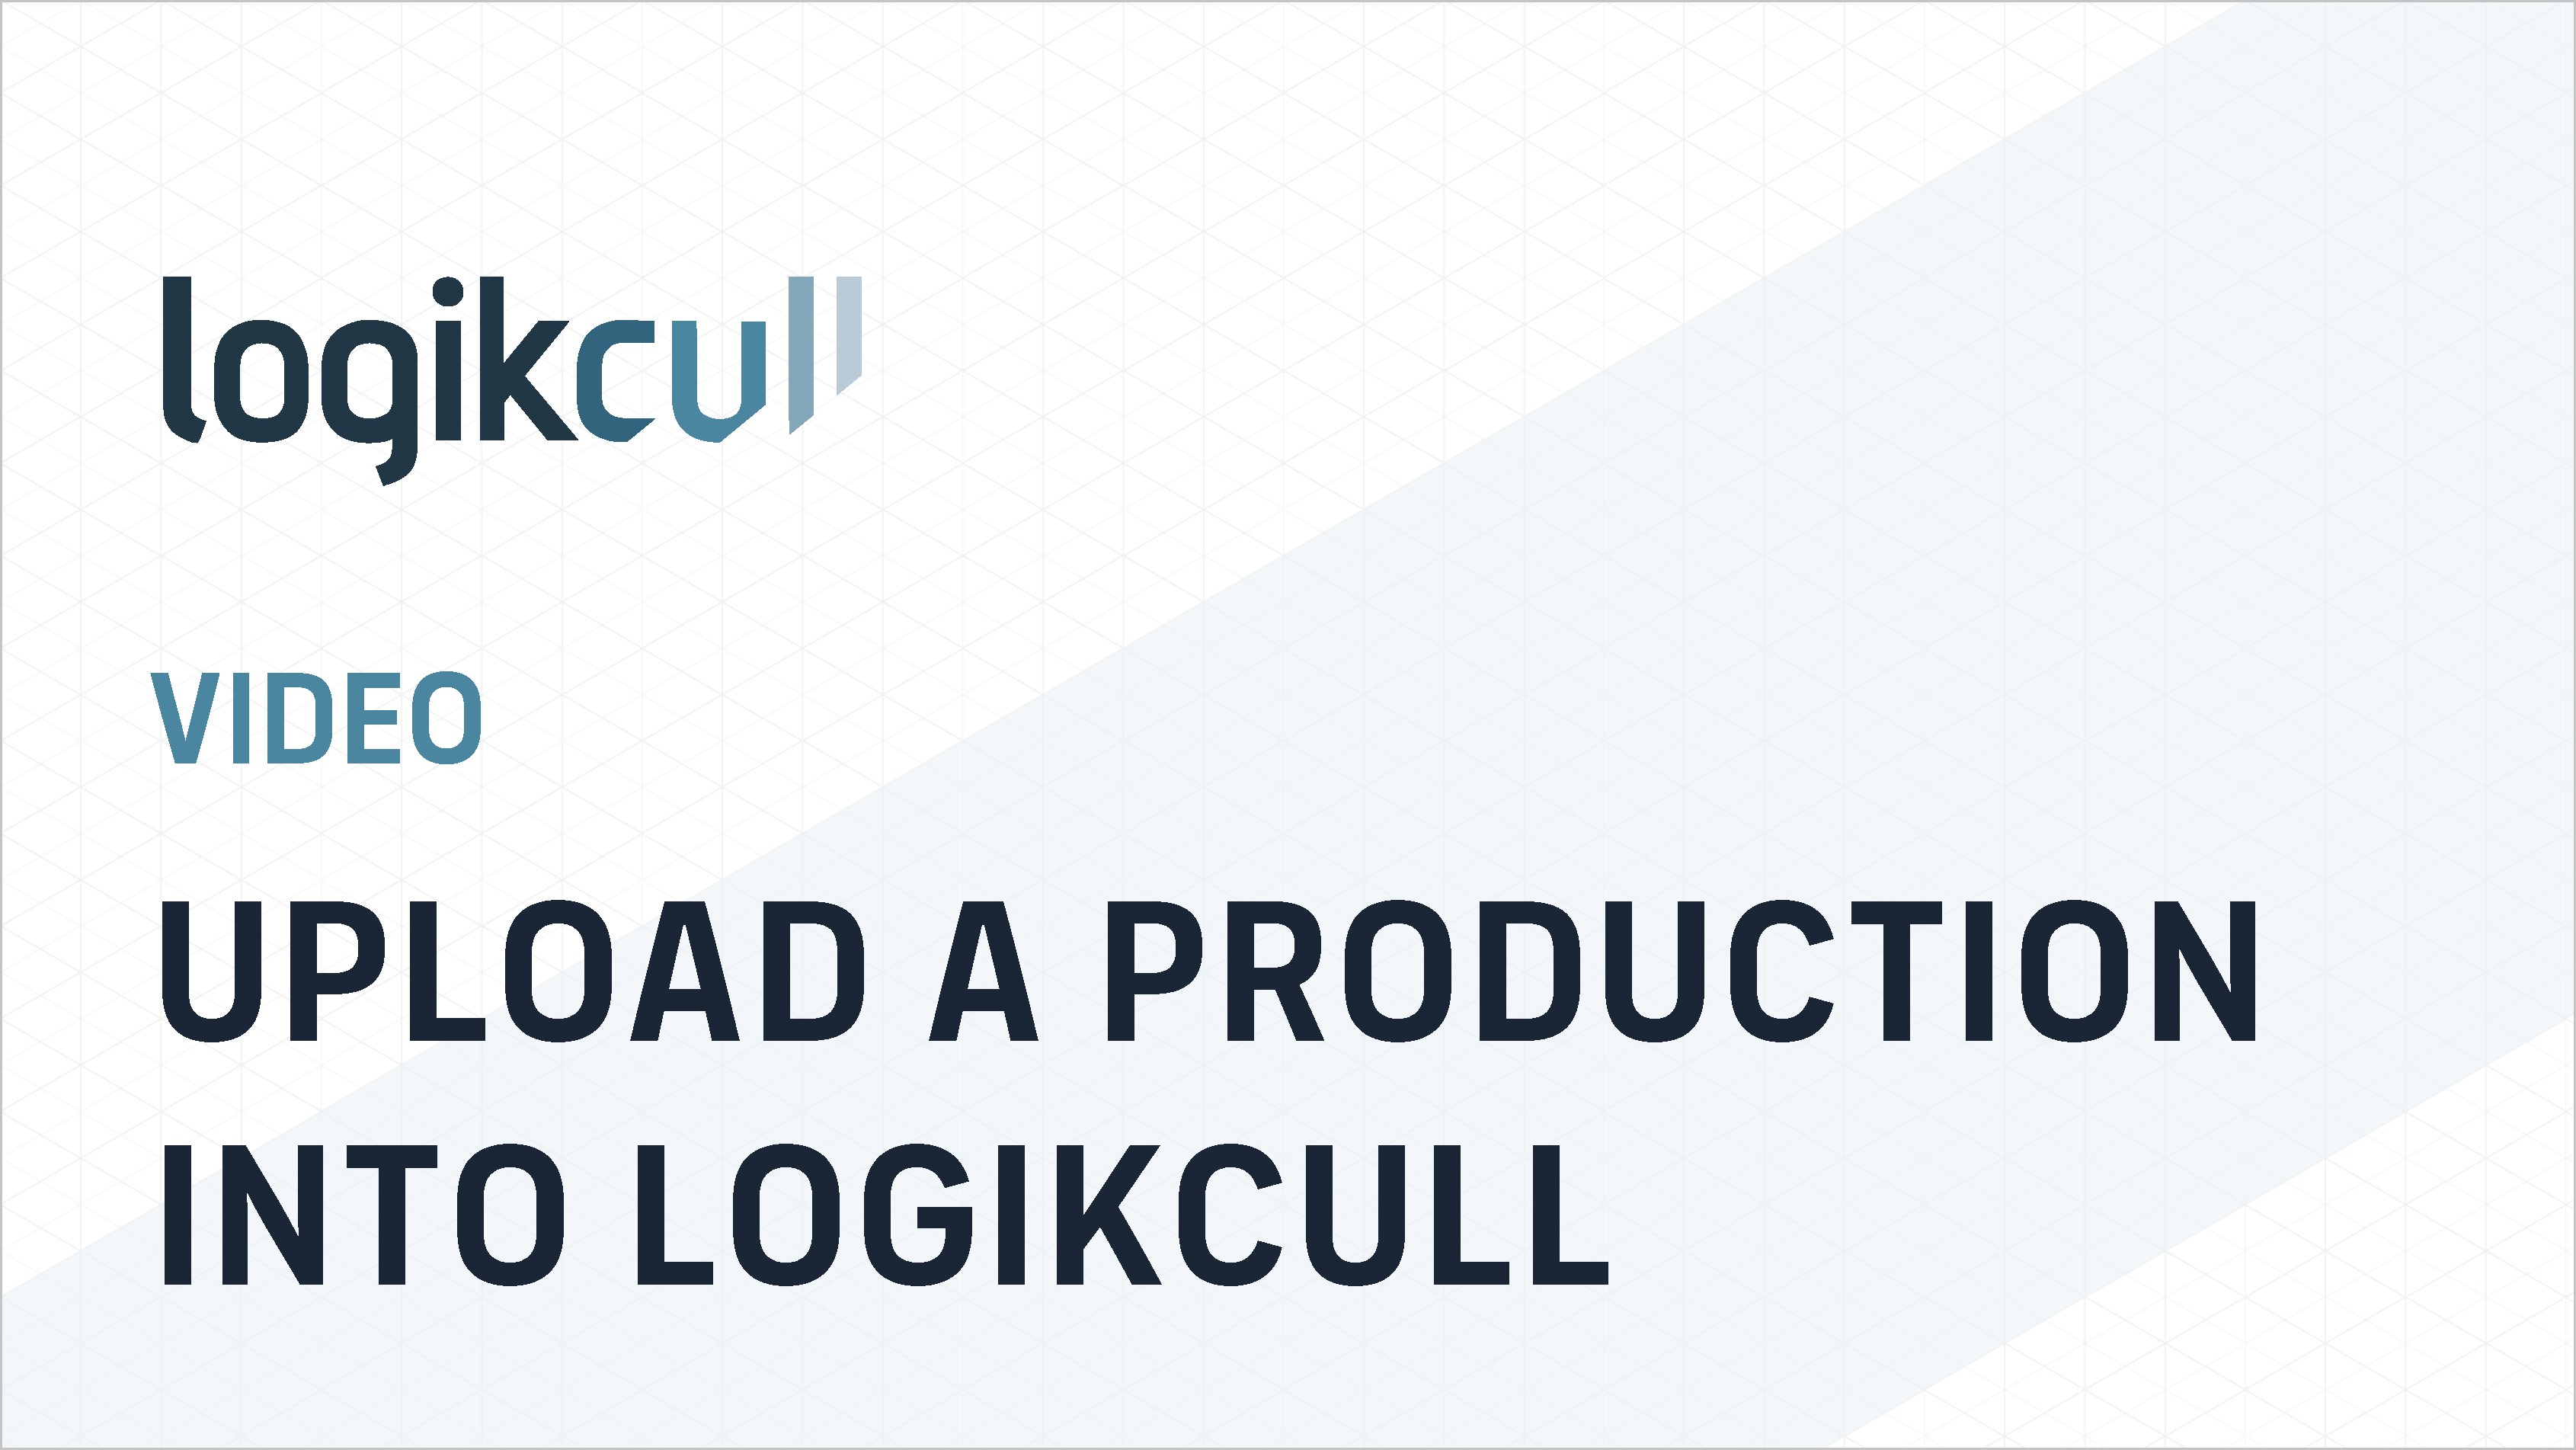 Uploading a Production into Logikcull